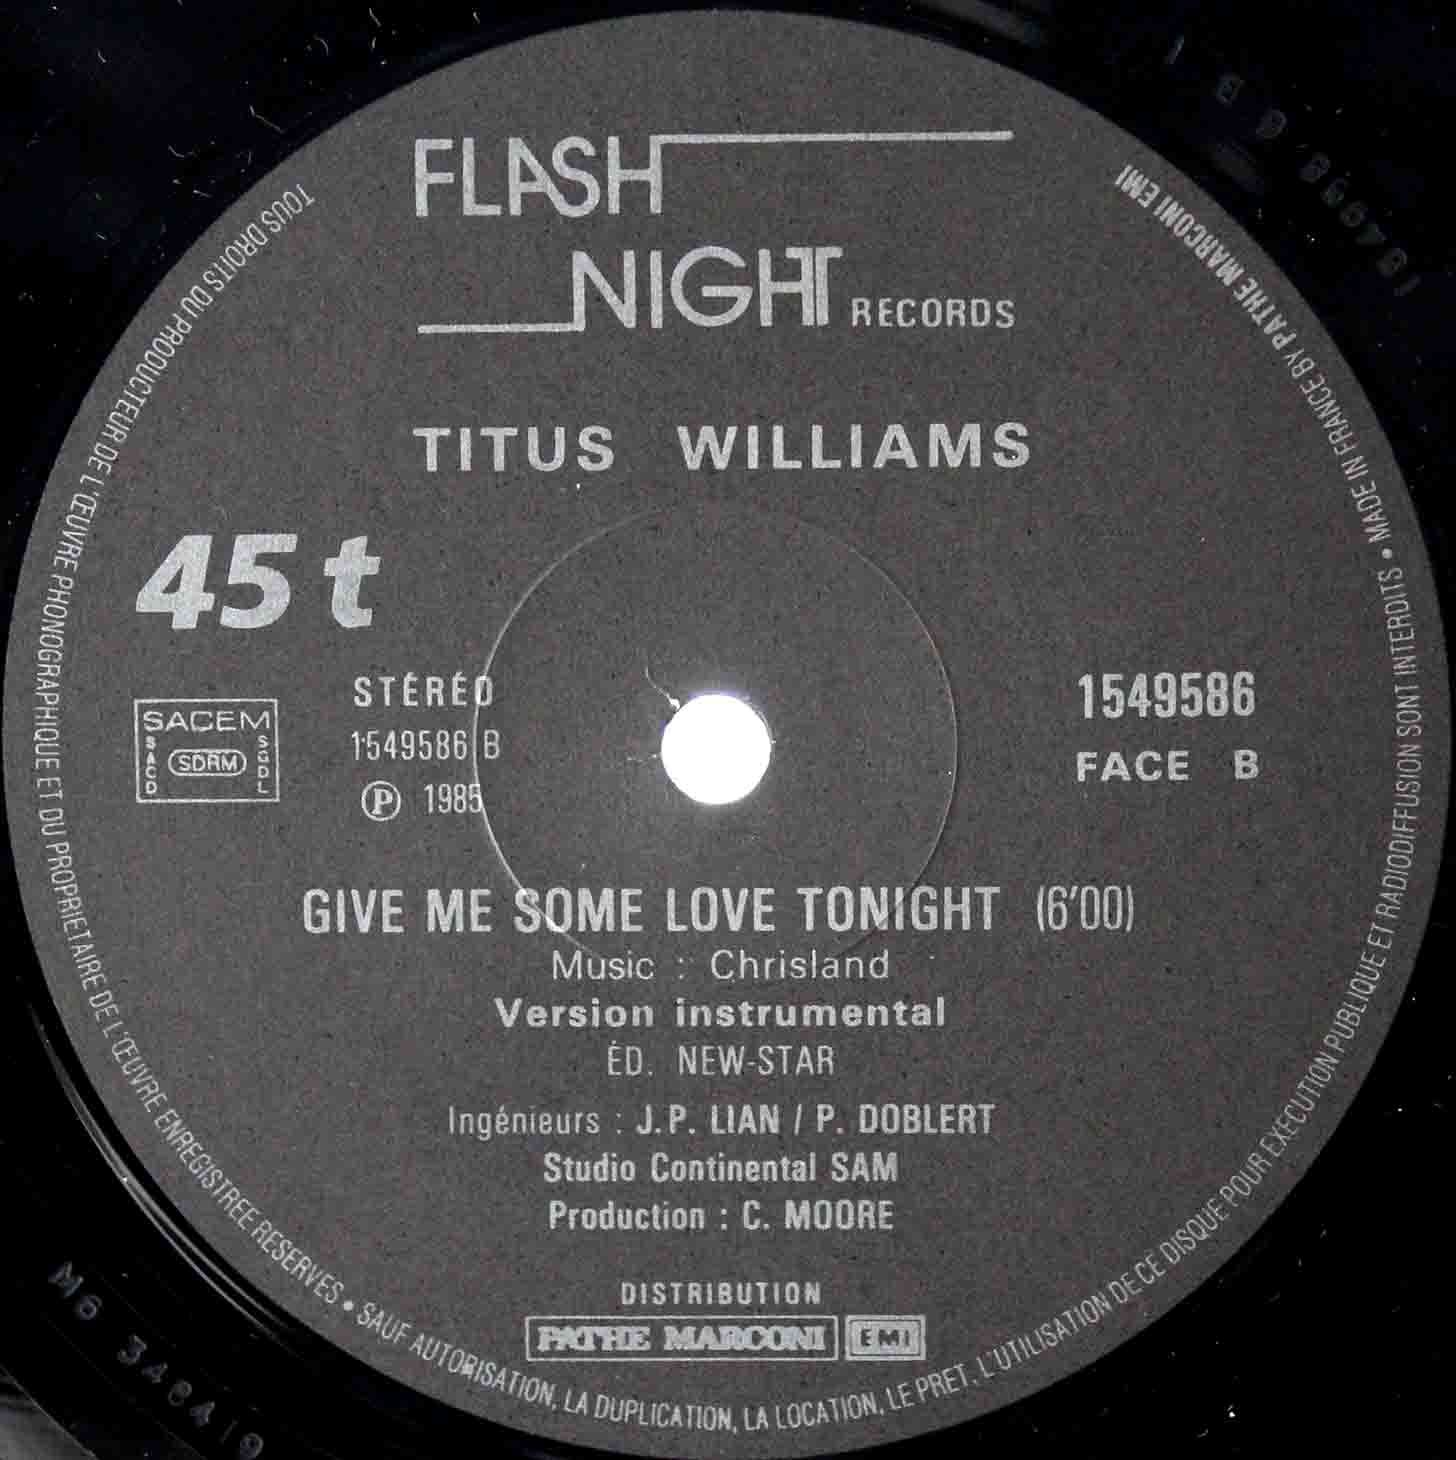 Titus Williams – Give Me Some Love Tonight 04